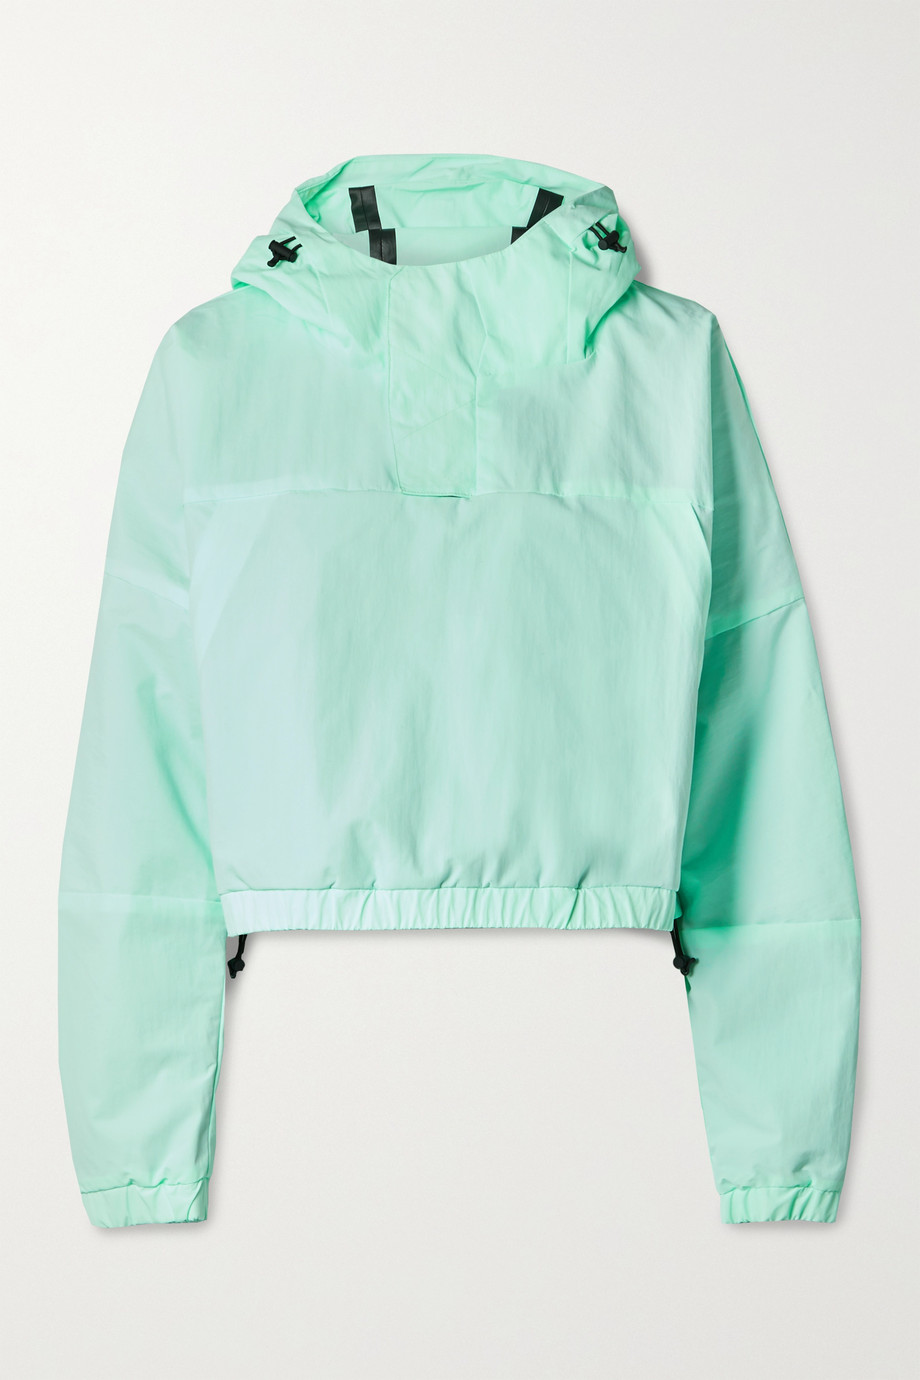 TEMPLA 2L hooded ski jacket